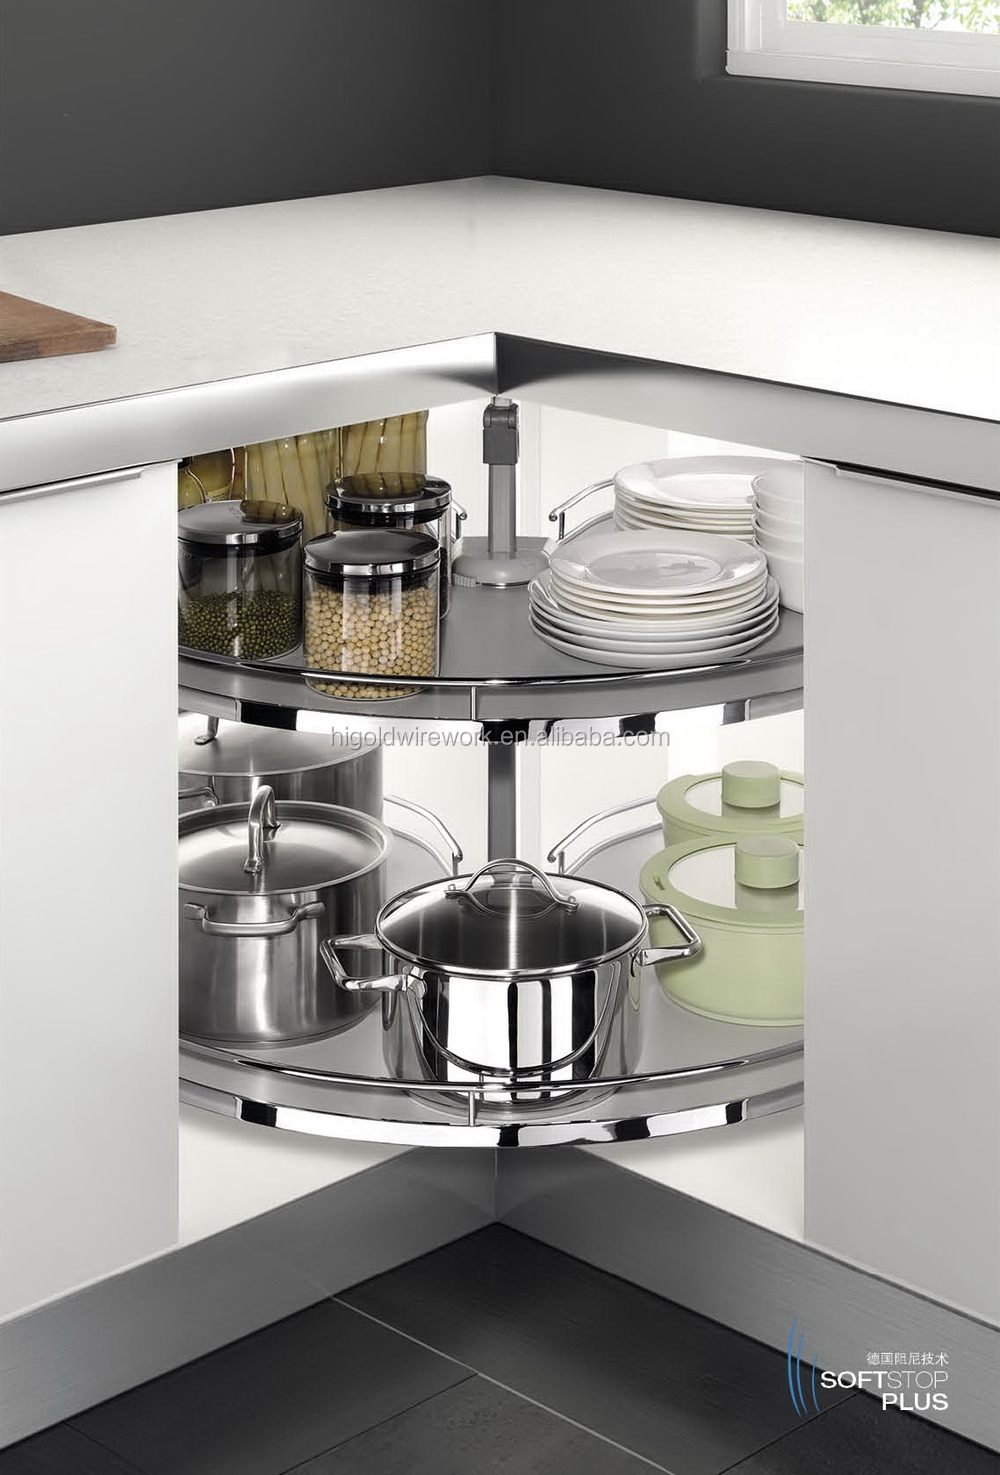 Kitchen Cabinet Carousel Corner Kitchen Cabinet 270 Degree Corner Carousel Storage Basket Buy